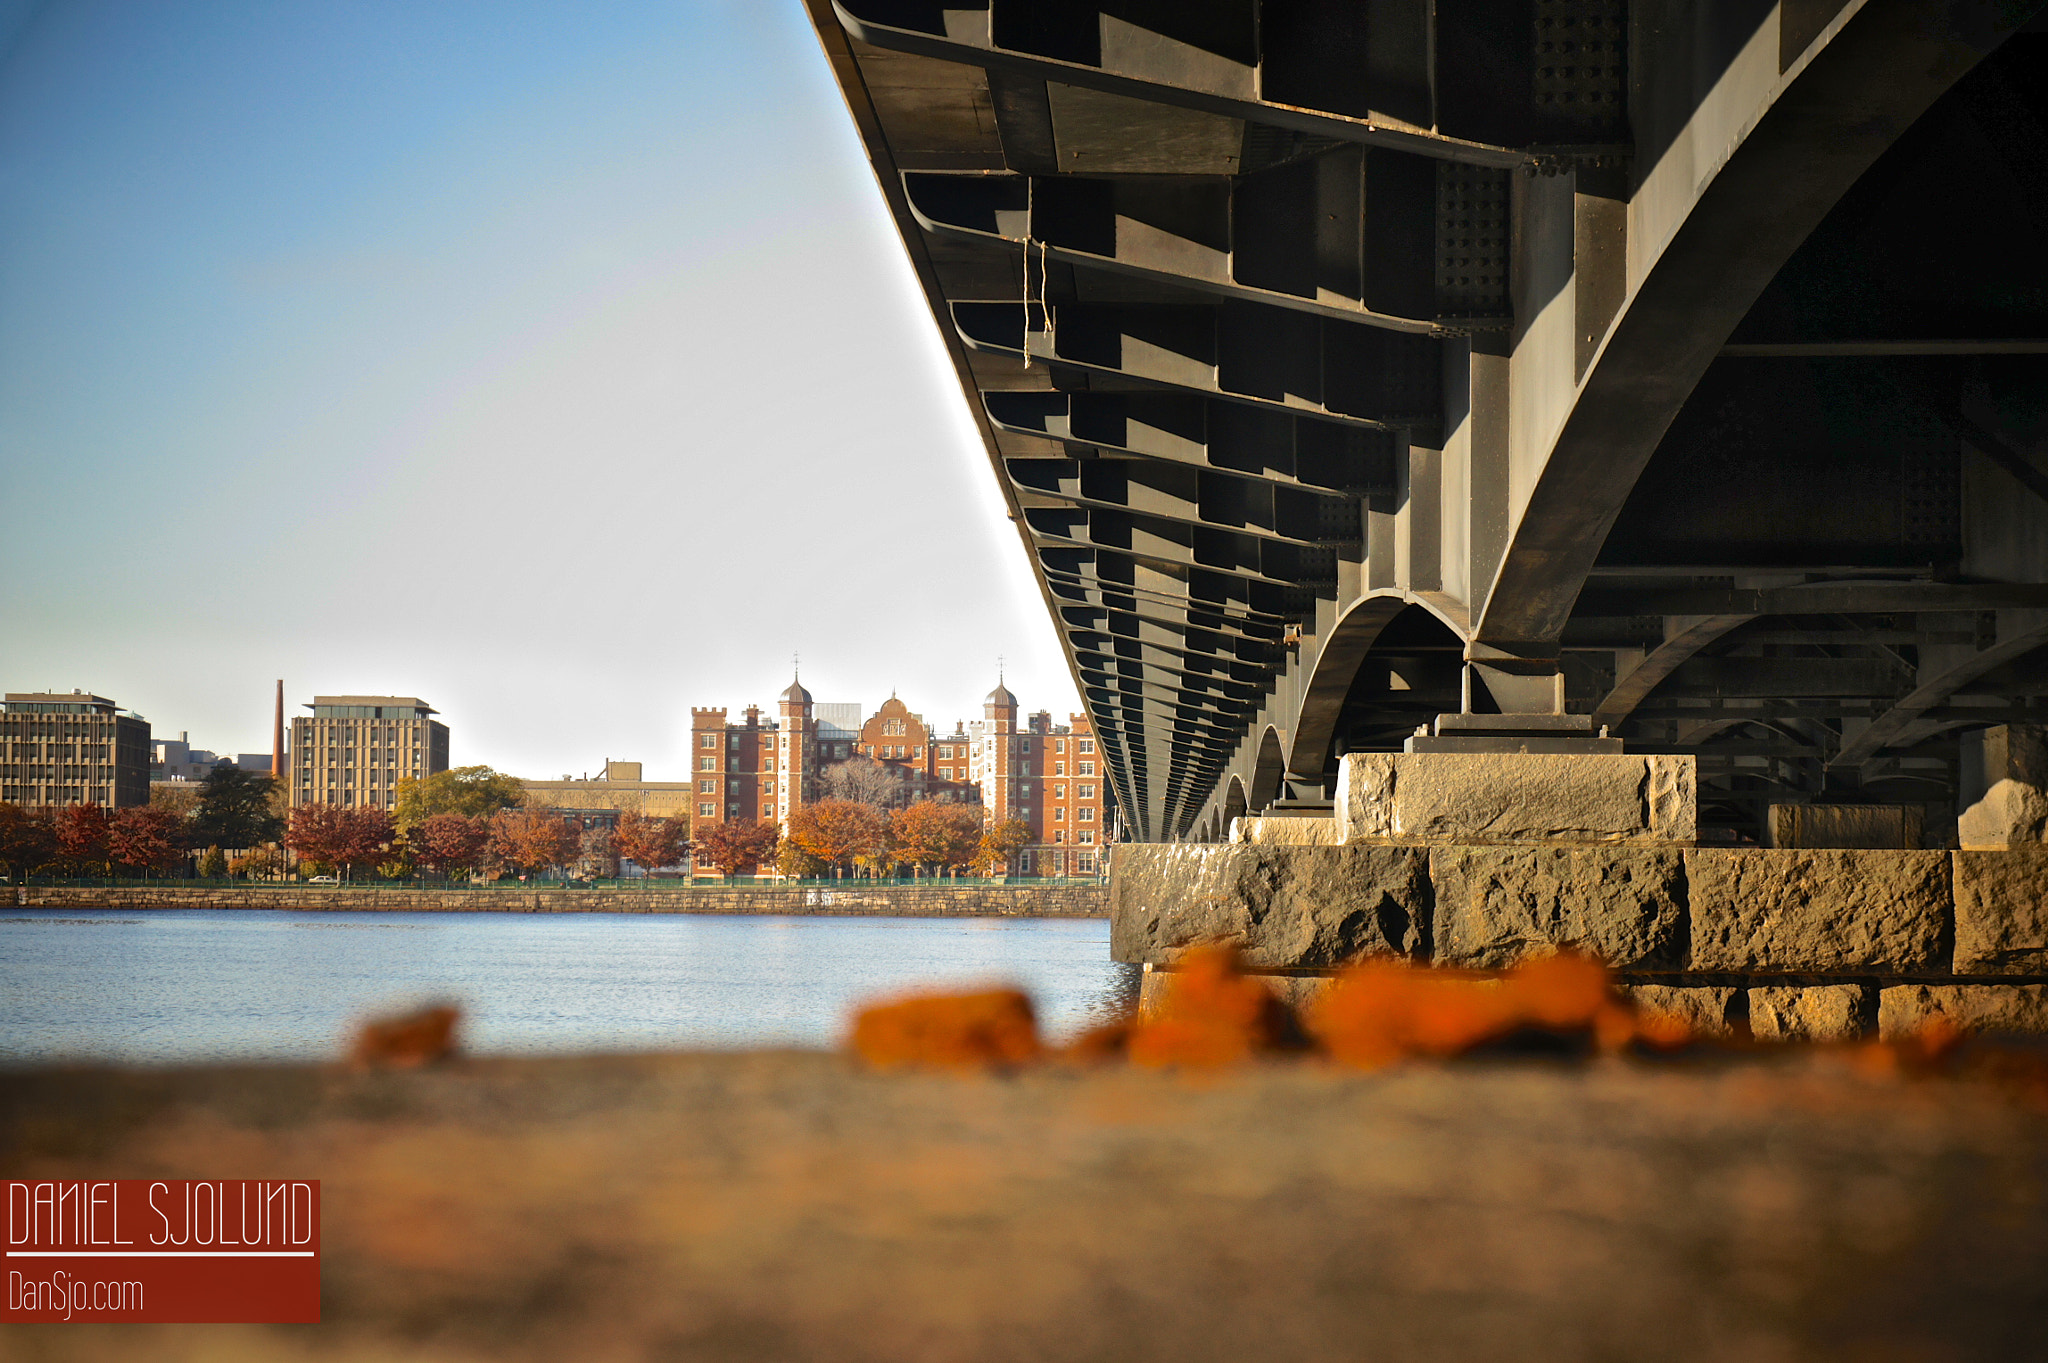 Photograph Under the Pass by Daniel Sjolund on 500px